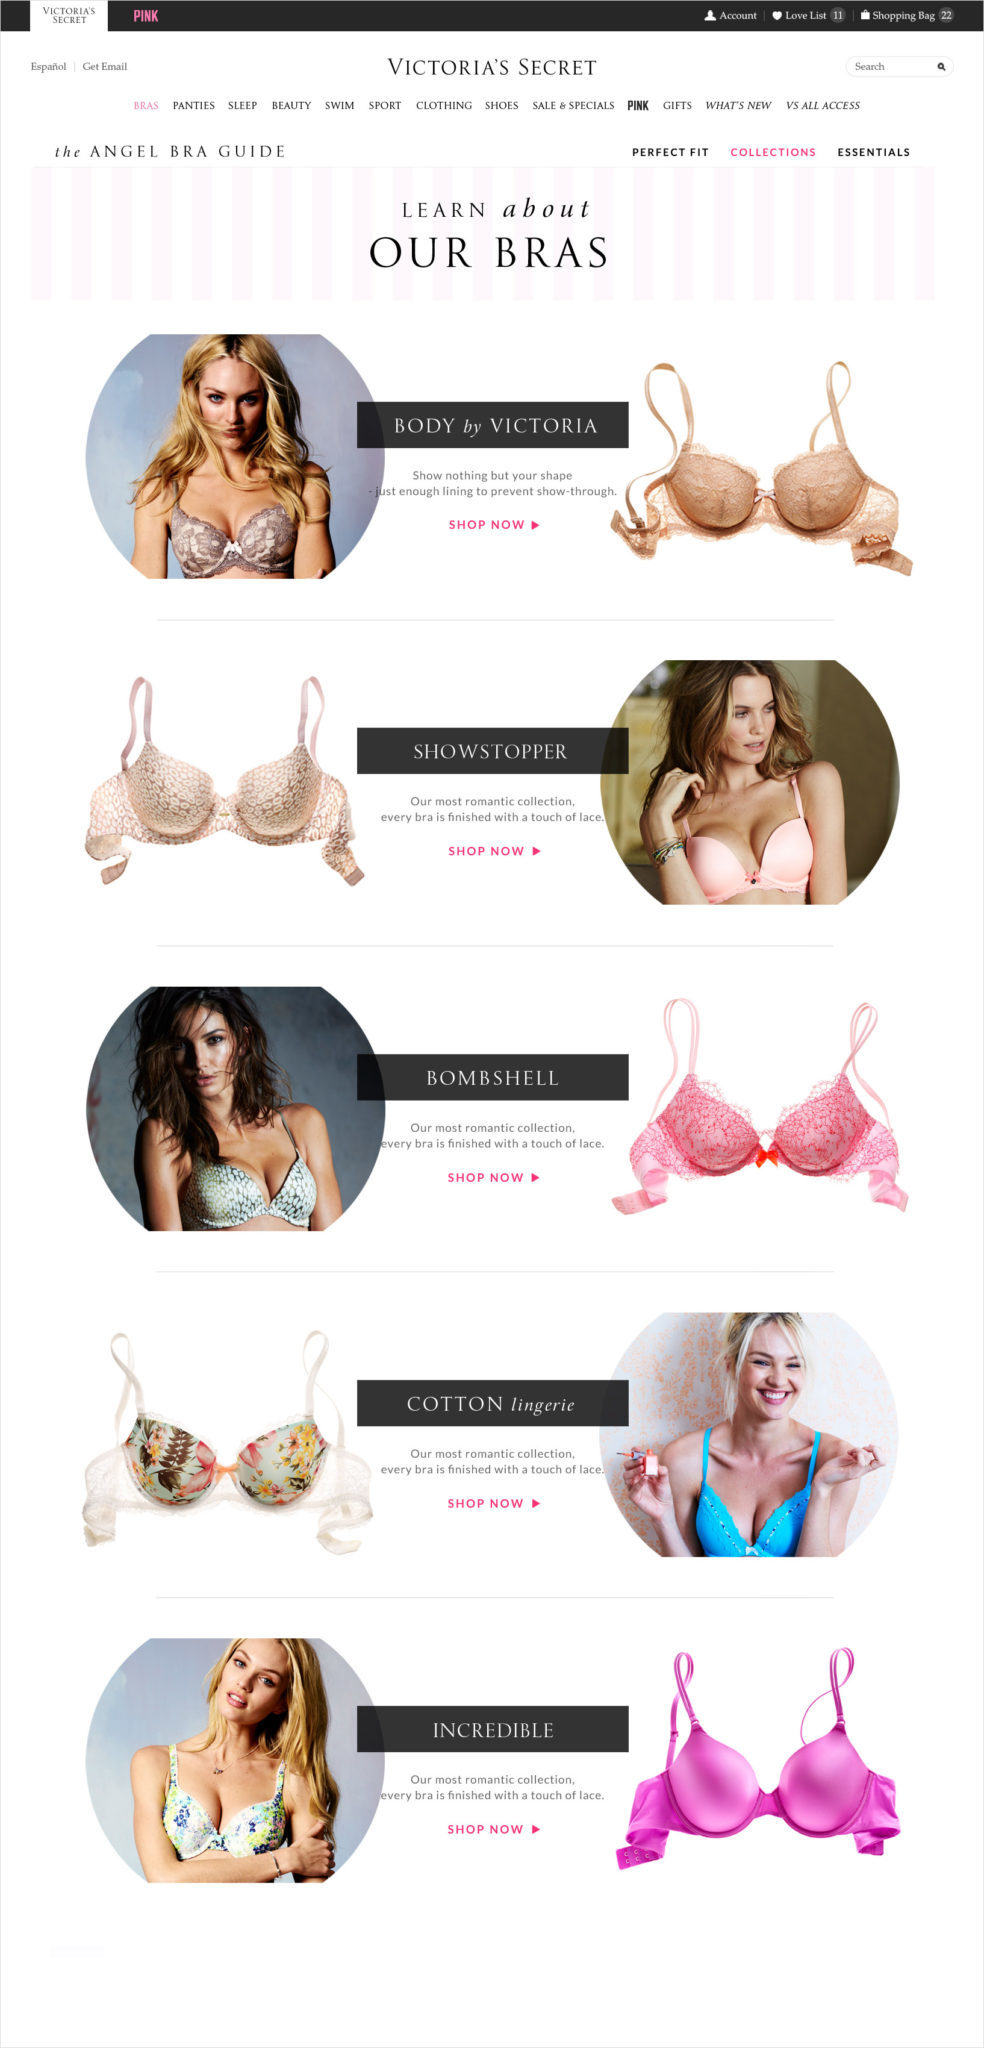 bra-guide-collection